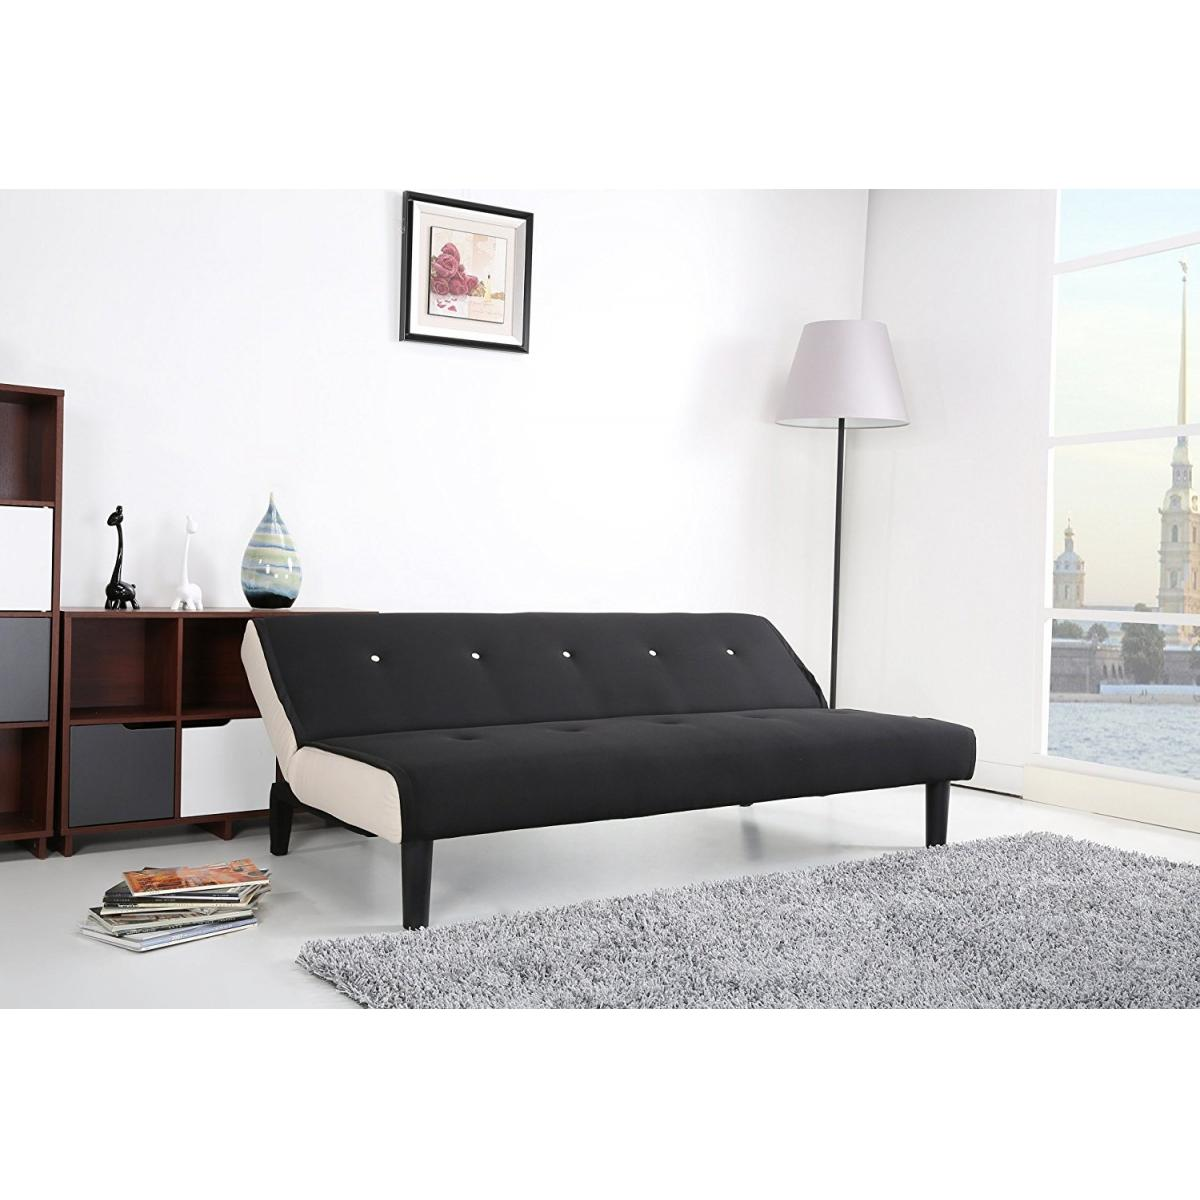 paulo schlafcouch schwarz weiss schlaffunktion sofa ebay. Black Bedroom Furniture Sets. Home Design Ideas